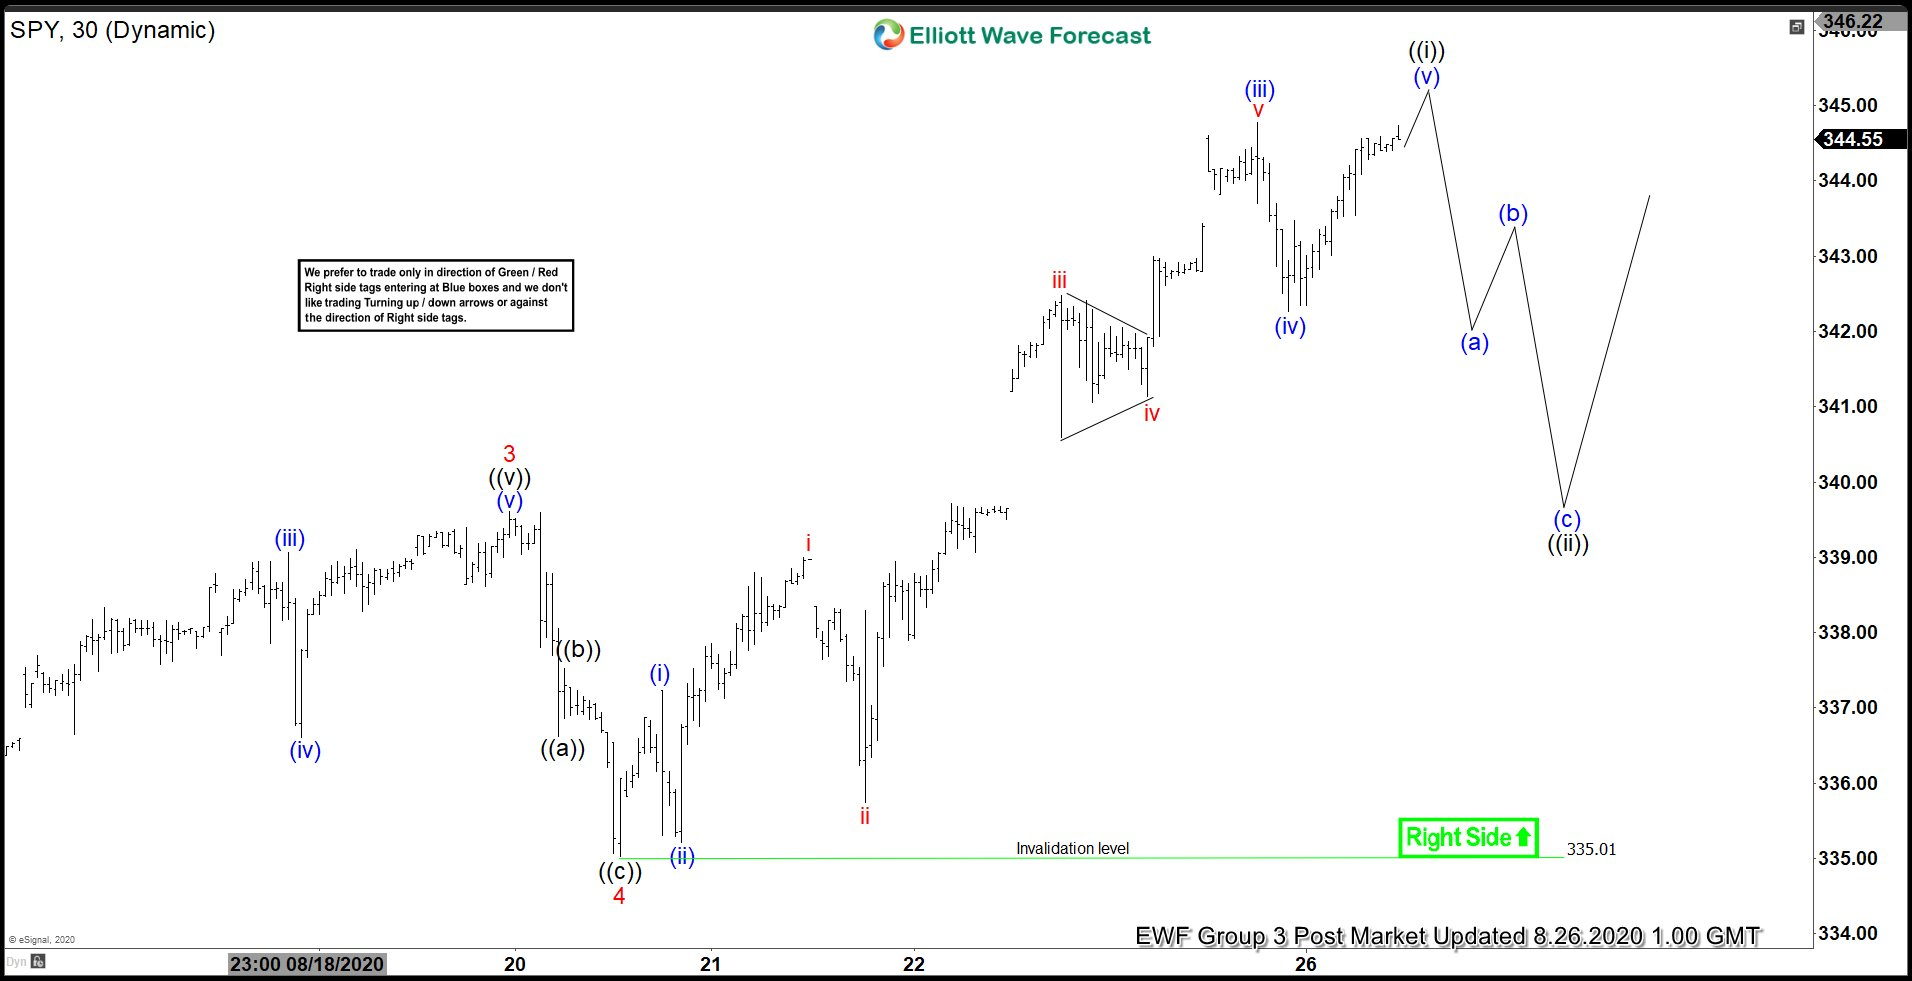 Elliott Wave View: Support Expected in SPY Pullback